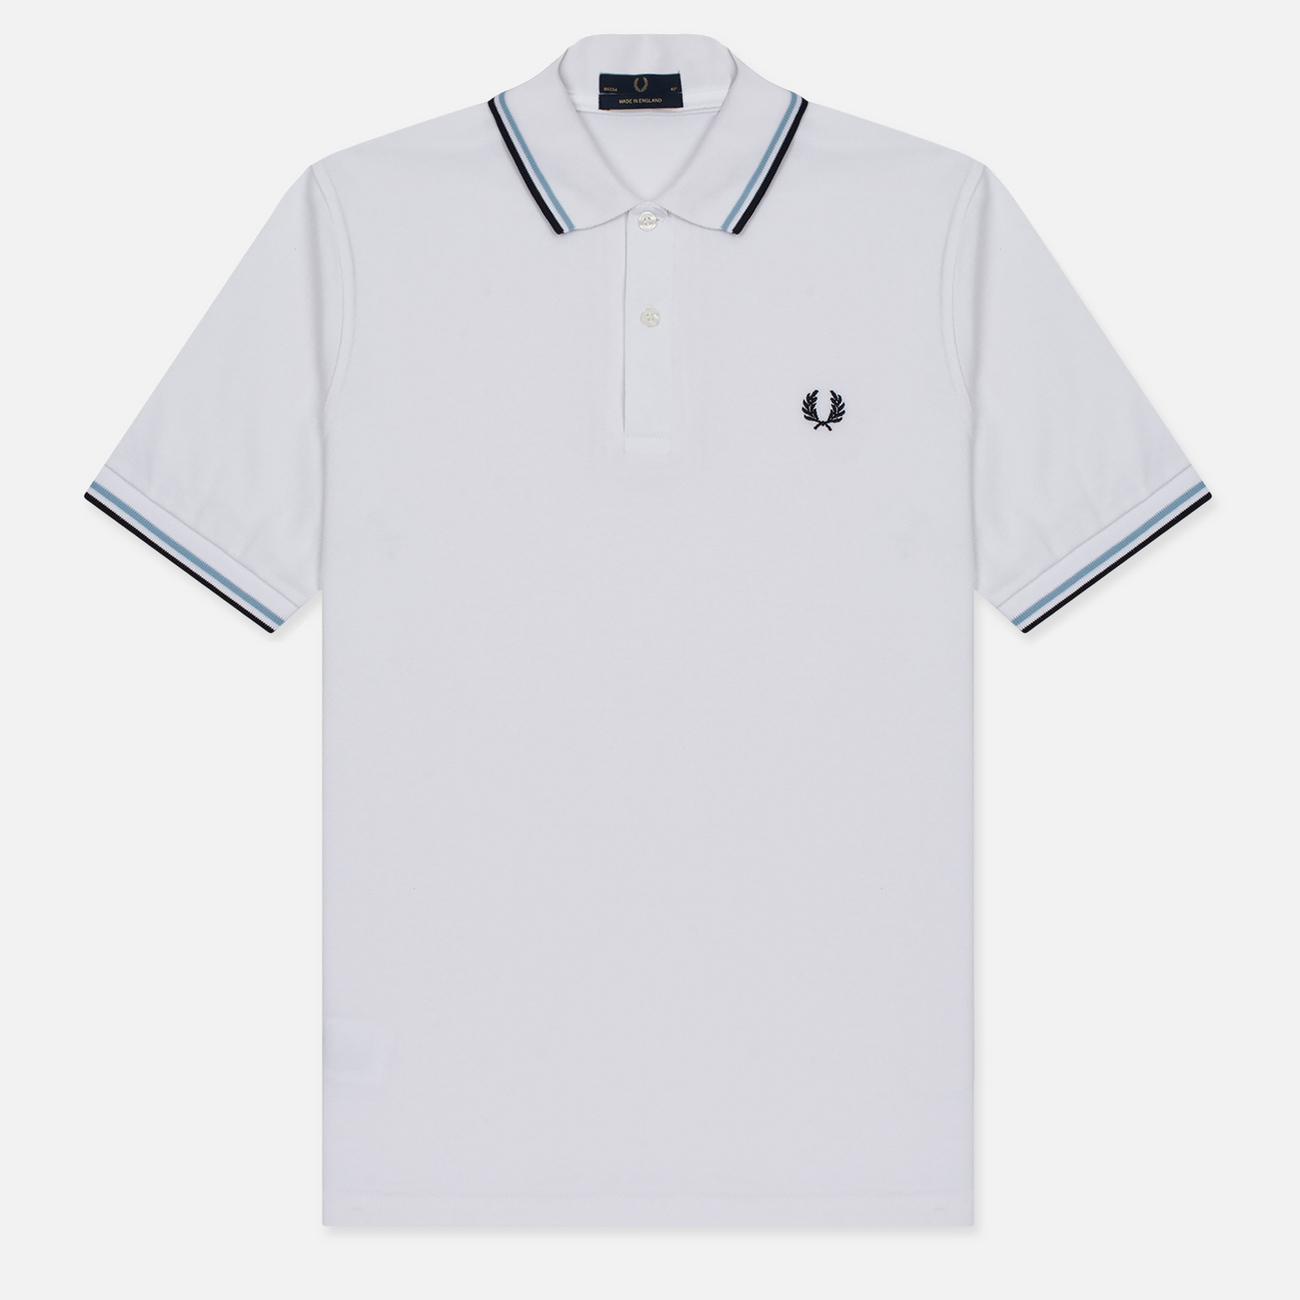 Мужское поло Fred Perry M12 White/Ice/Navy